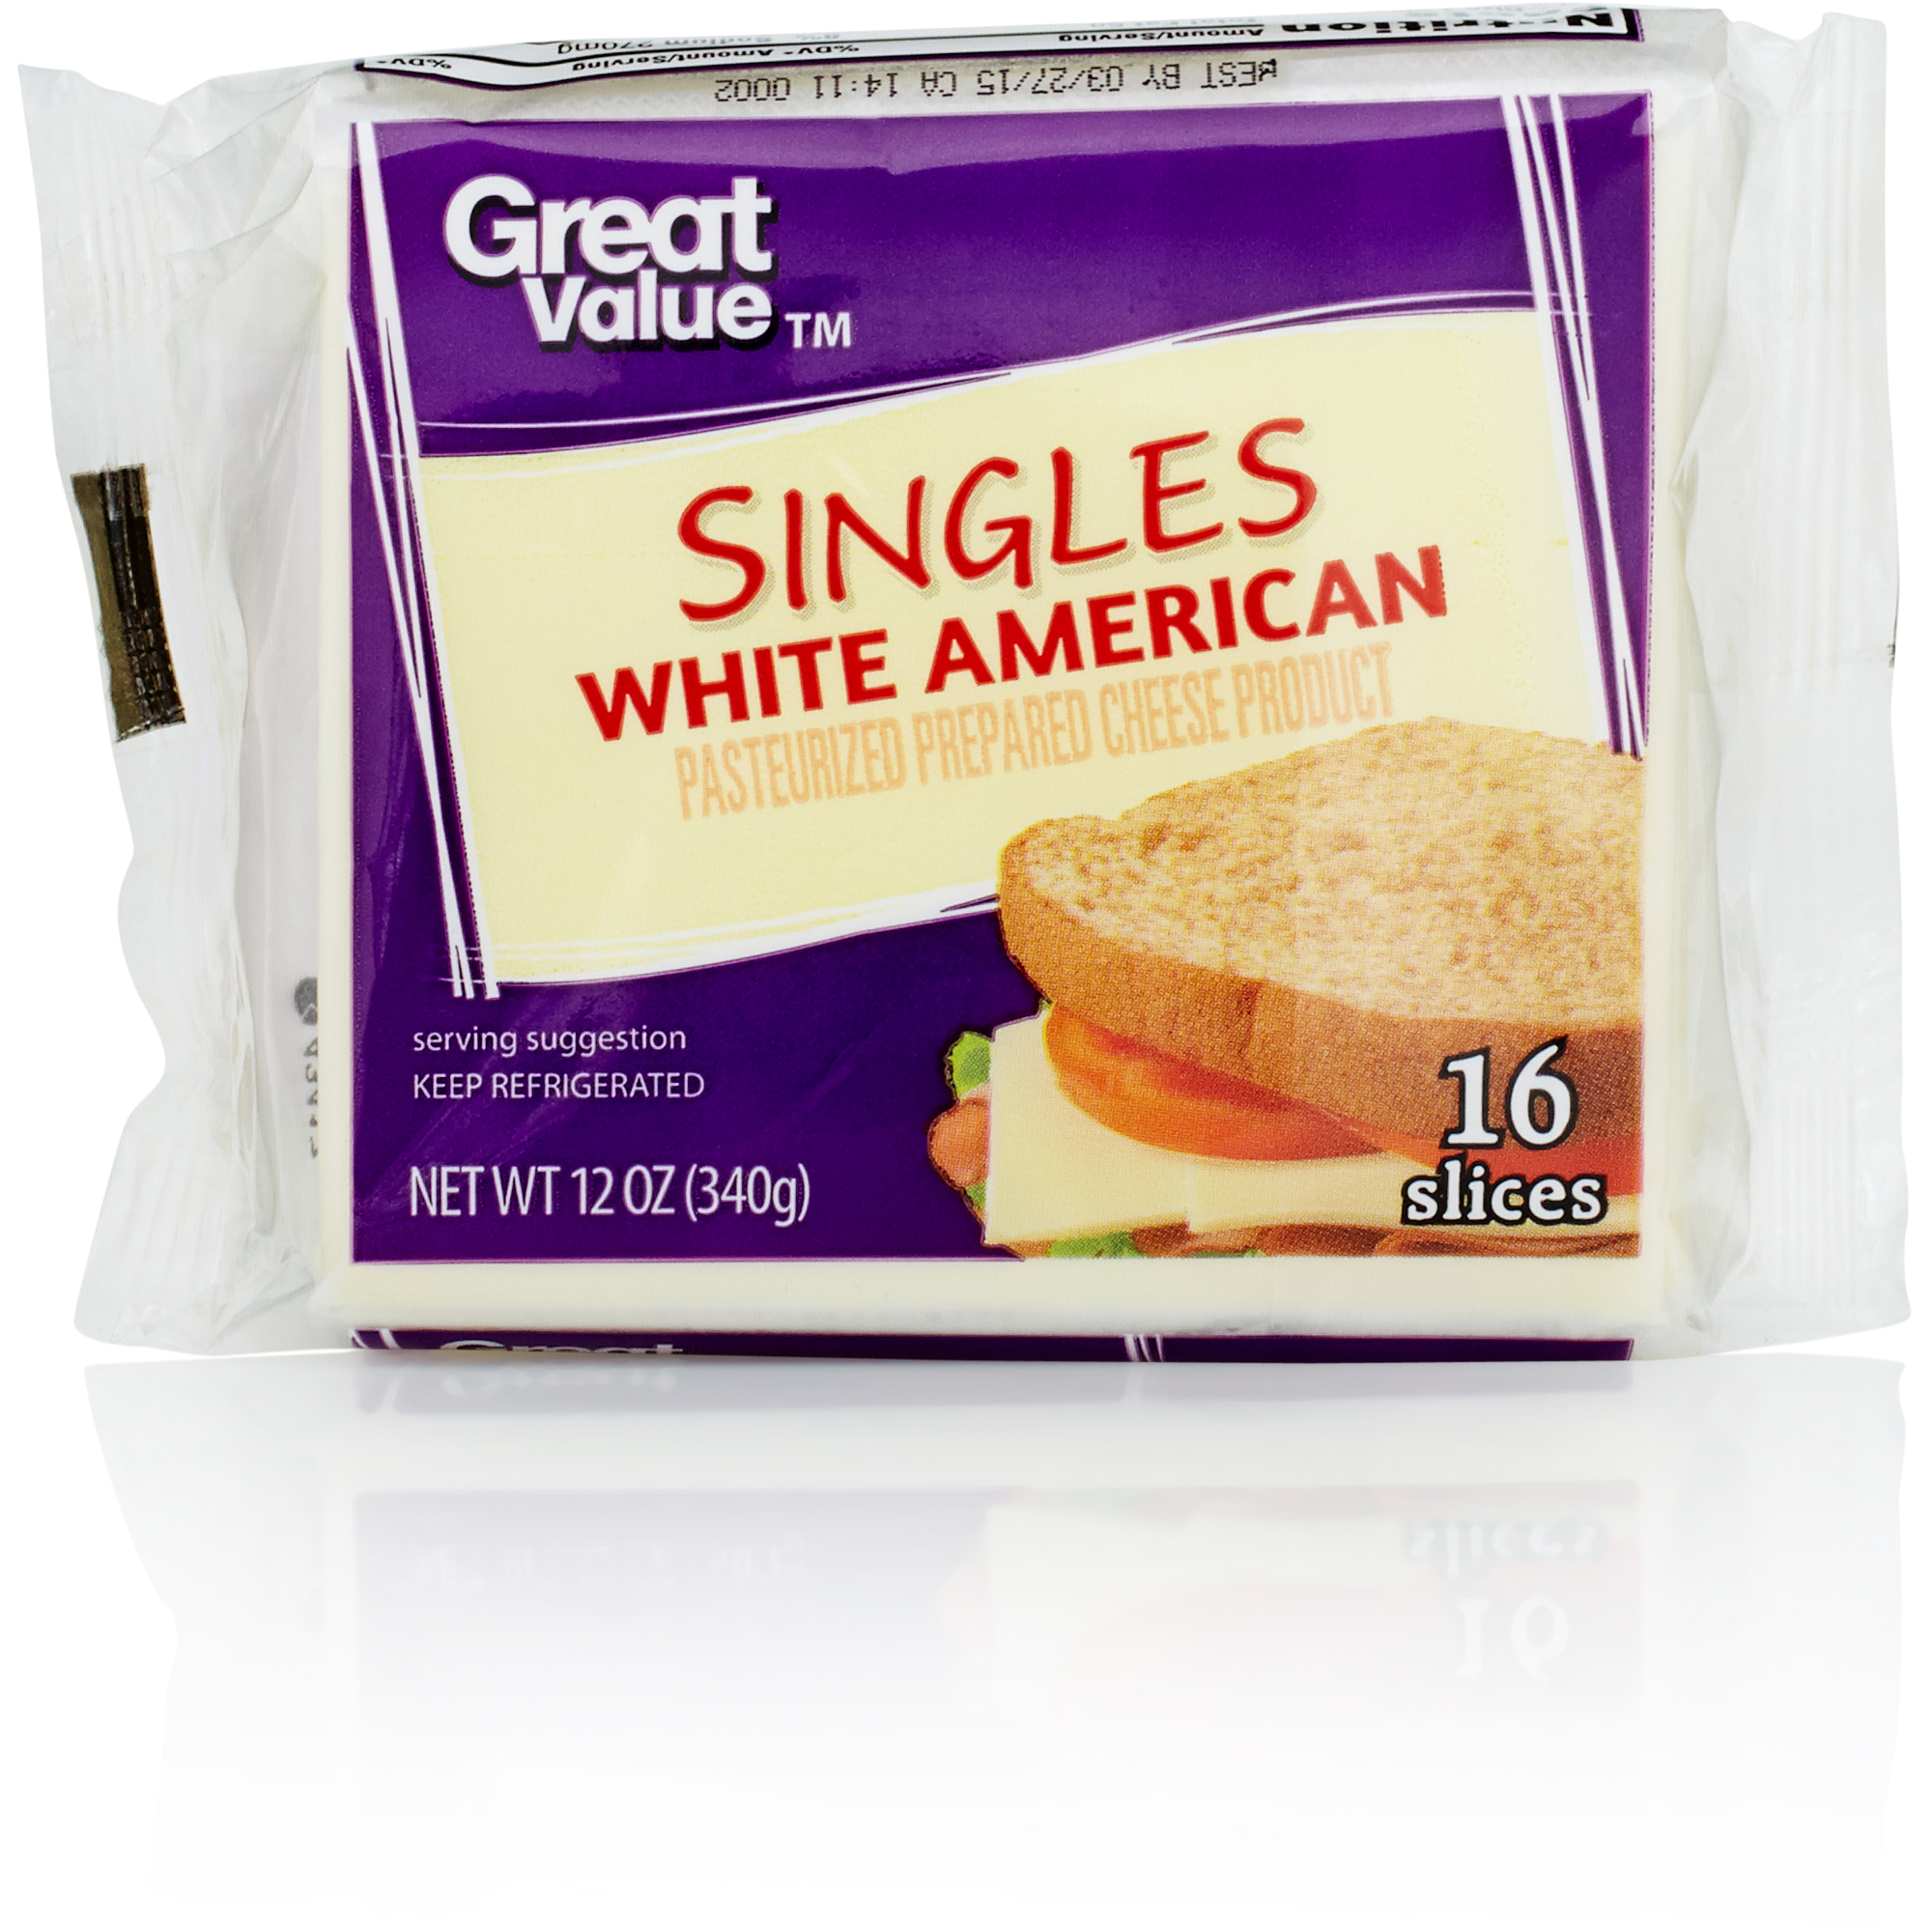 Great Value White American Cheese Product Singles, 12 oz by Wal-Mart Stores, Inc.